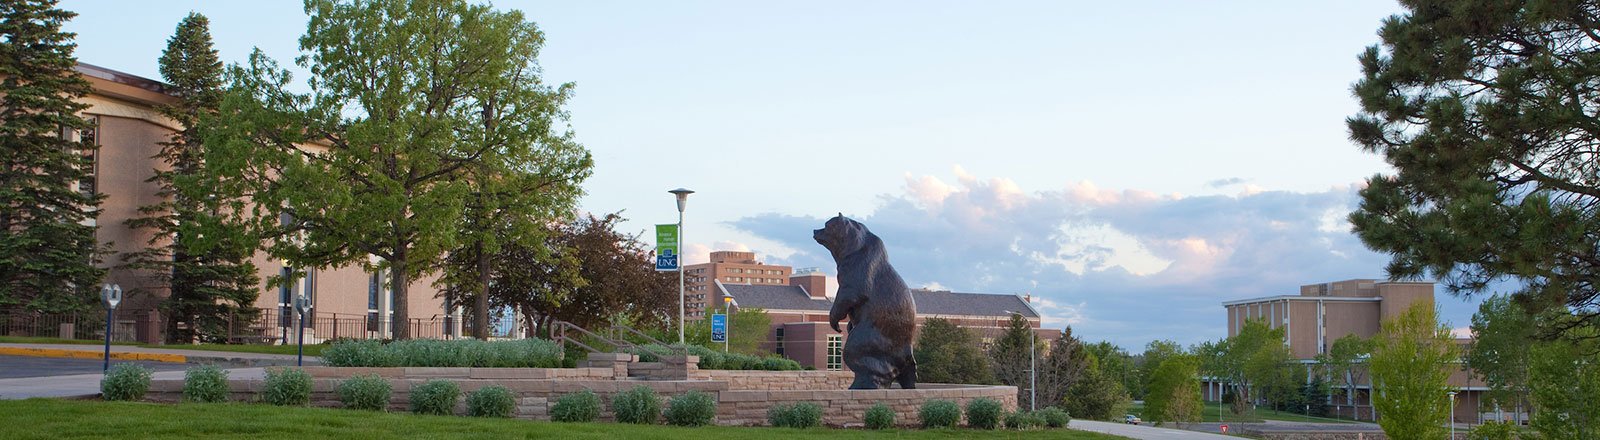 Bear statue outside of University Center on UNC's campus